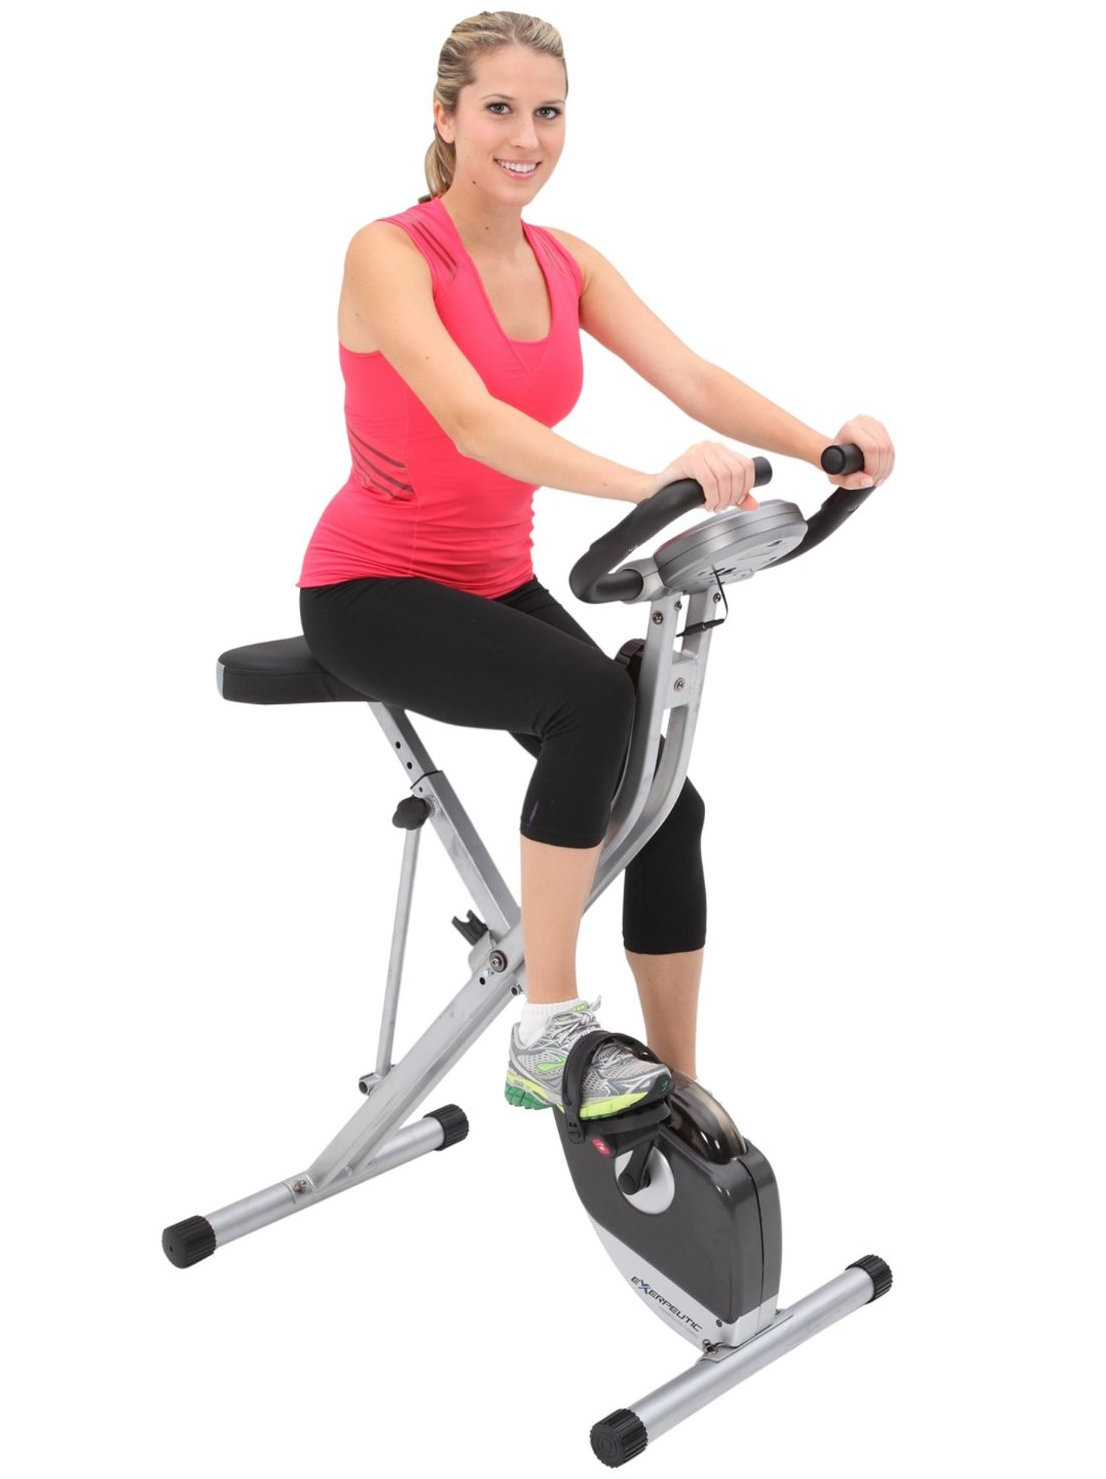 exercise bike exercises to lose weight